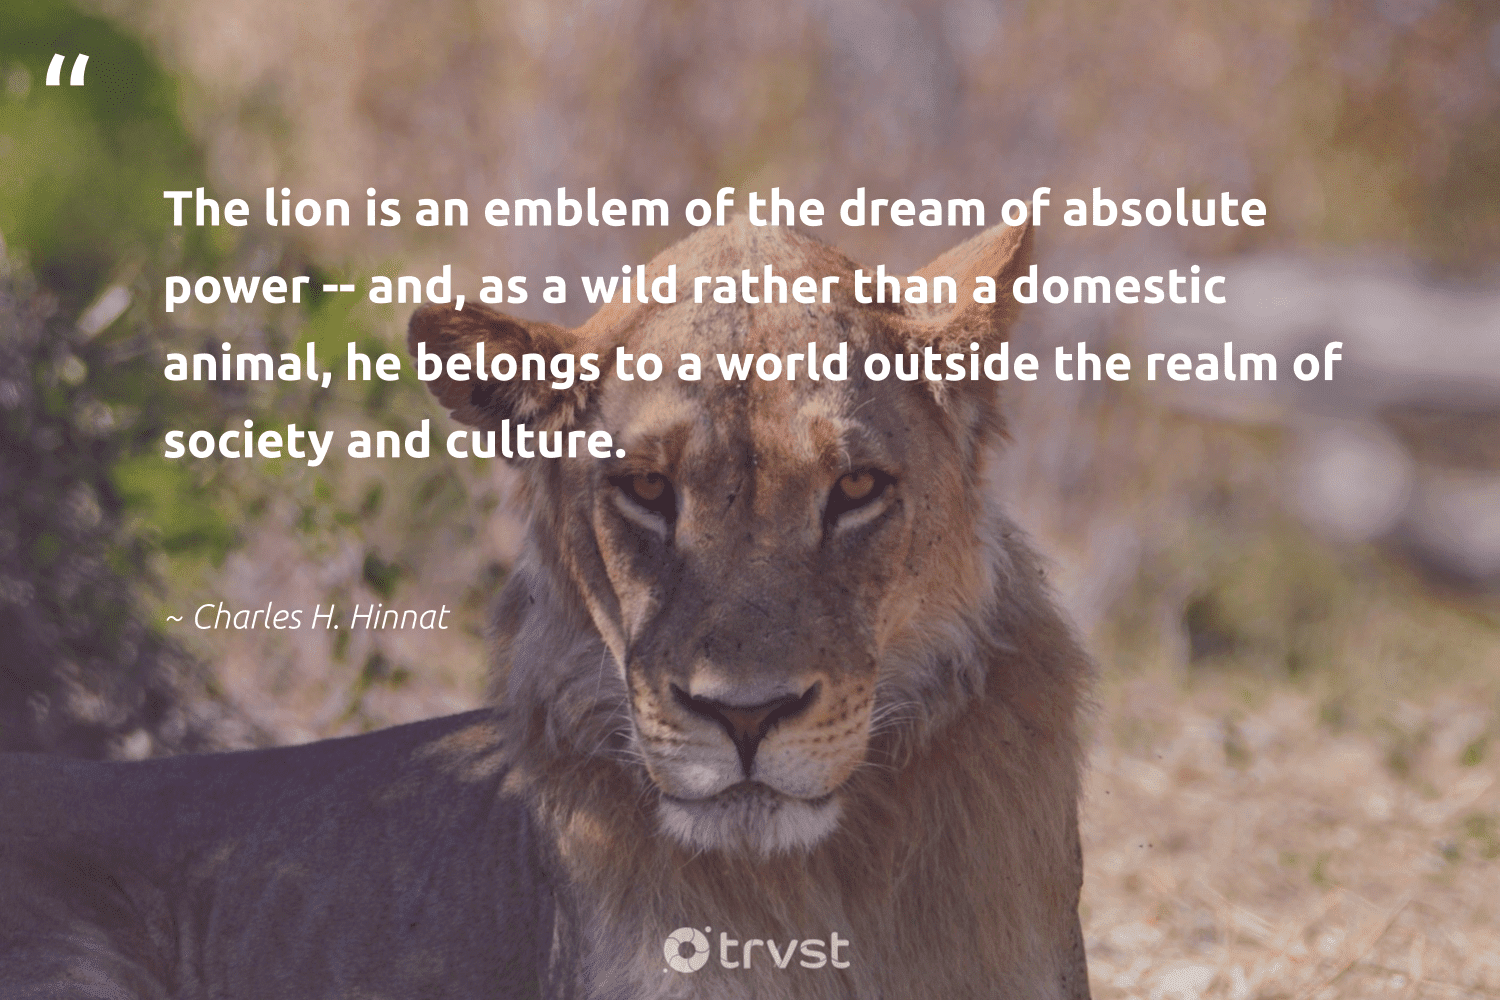 """""""The lion is an emblem of the dream of absolute power -- and, as a wild rather than a domestic animal, he belongs to a world outside the realm of society and culture.""""  - Charles H. Hinnat #trvst #quotes #animal #society #wild #lion #animallovers #splendidanimals #nature #changetheworld #animals #bigcats"""